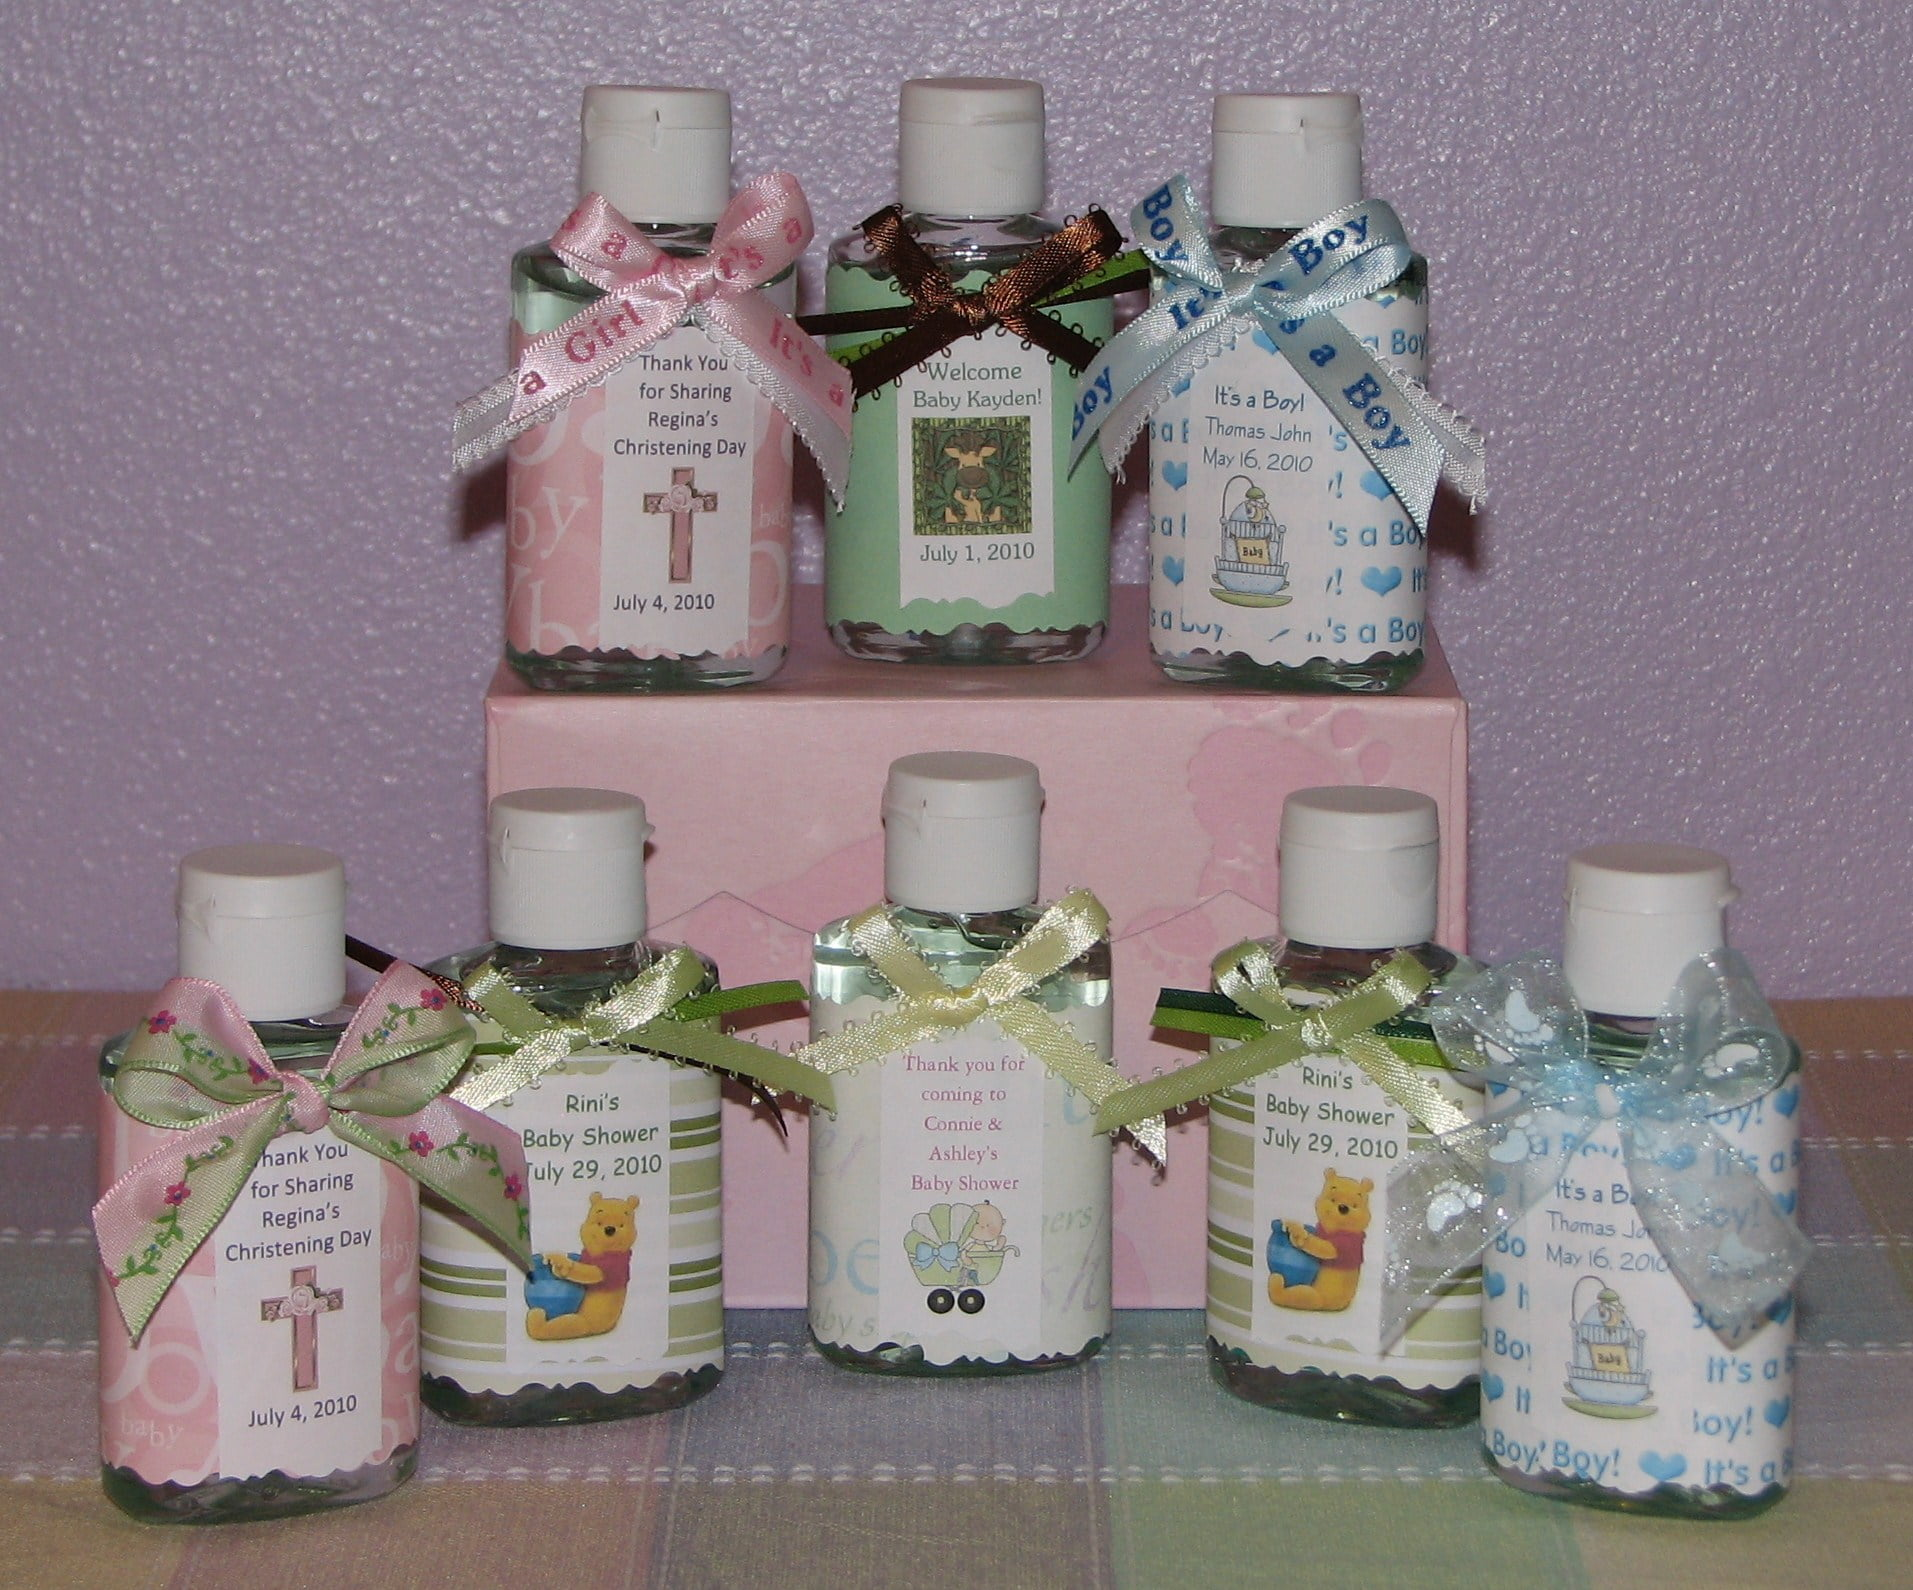 Three Creative Ideas To Make Homemade Baby Shower Favors